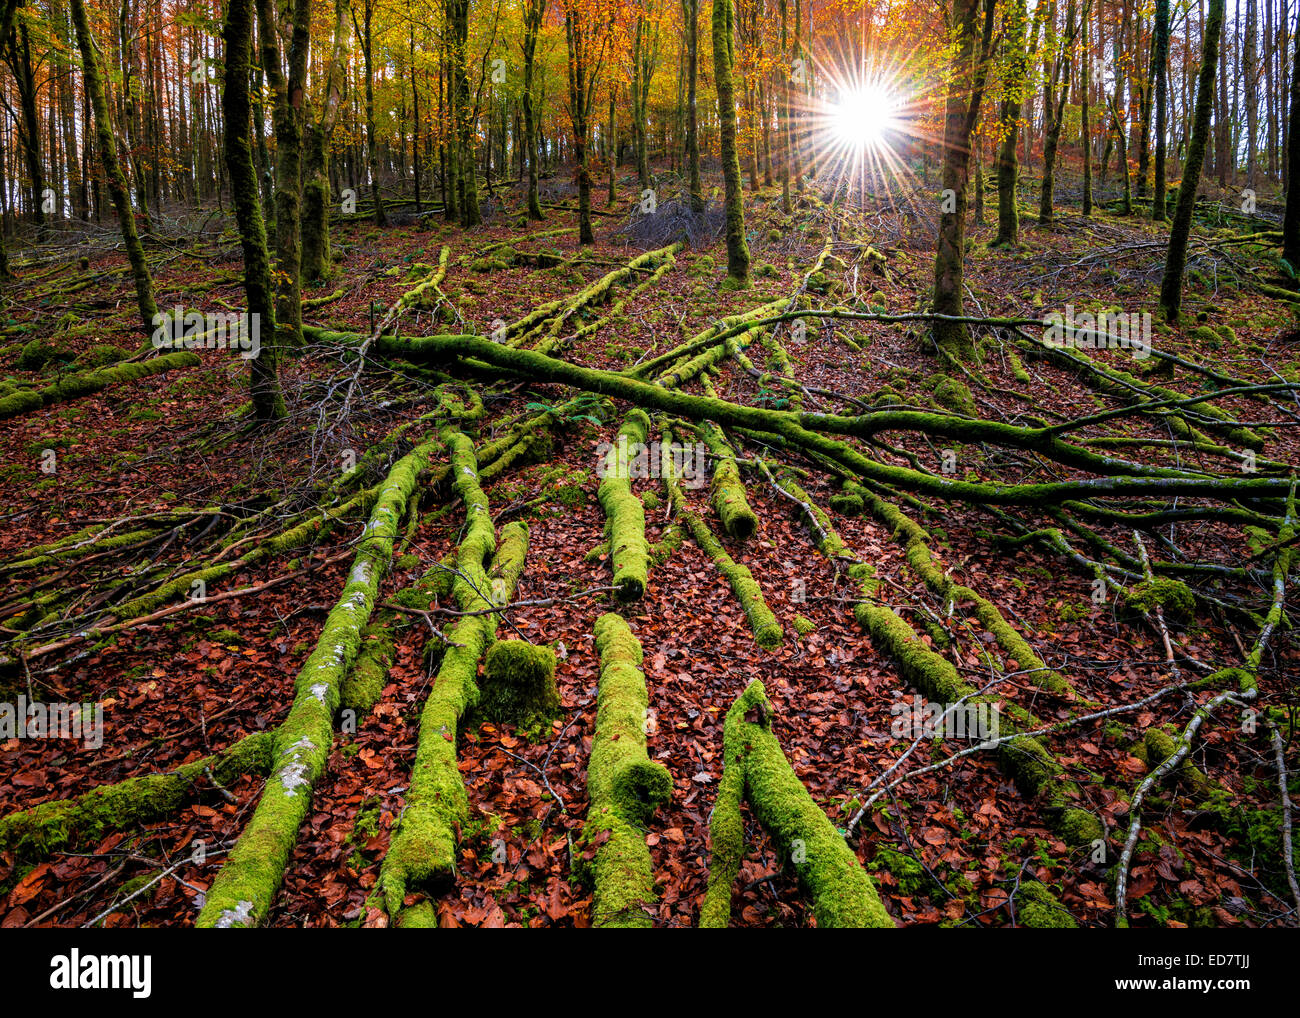 Autumnal woodland at first light. - Stock Image